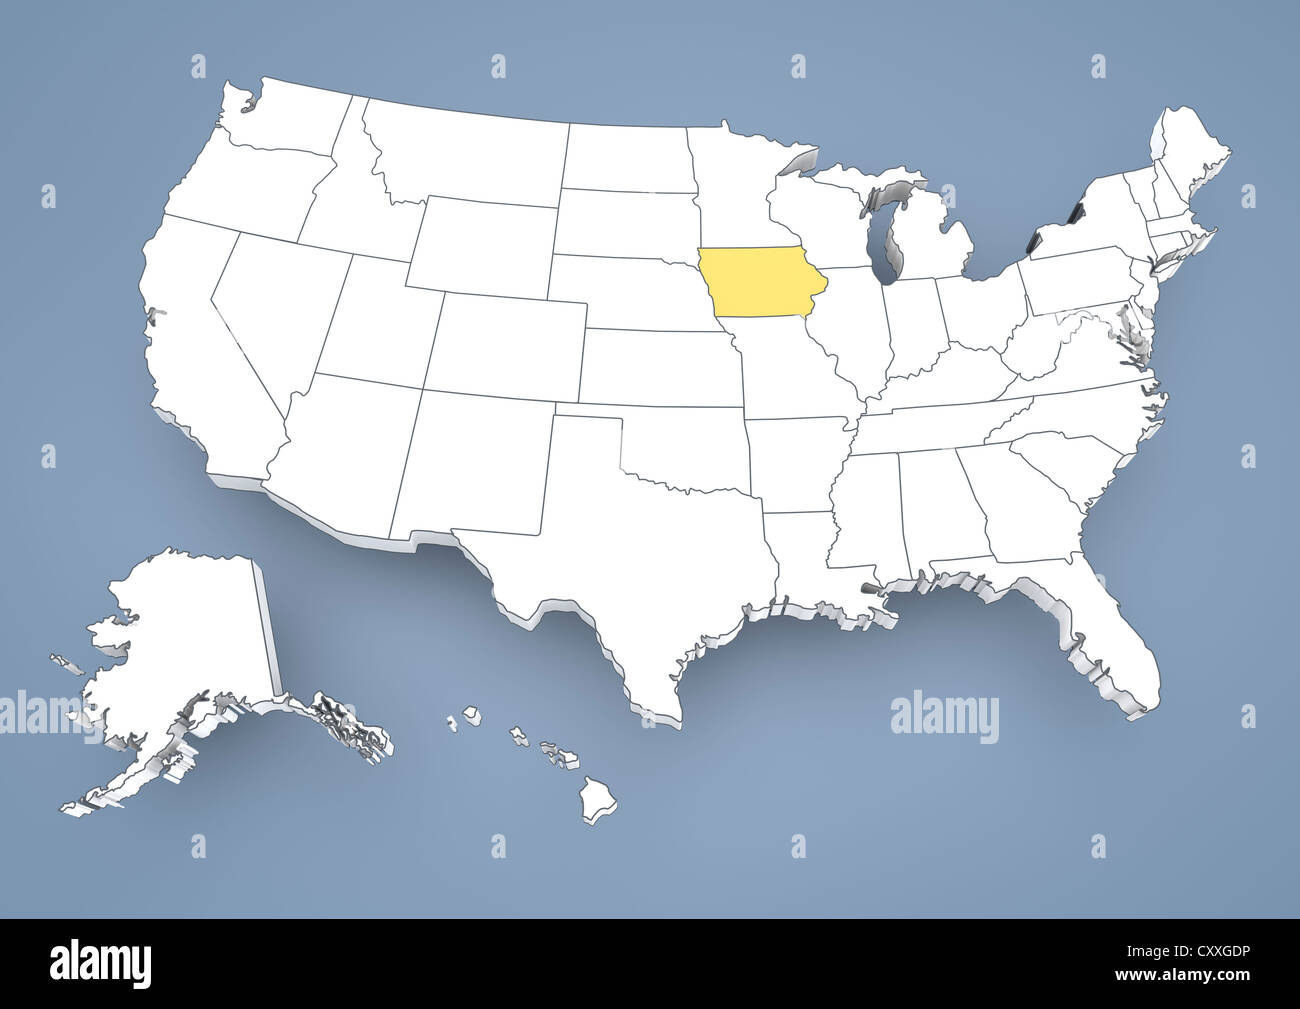 iowa ia highlighted on a contour map of usa united states of america 3d illustration